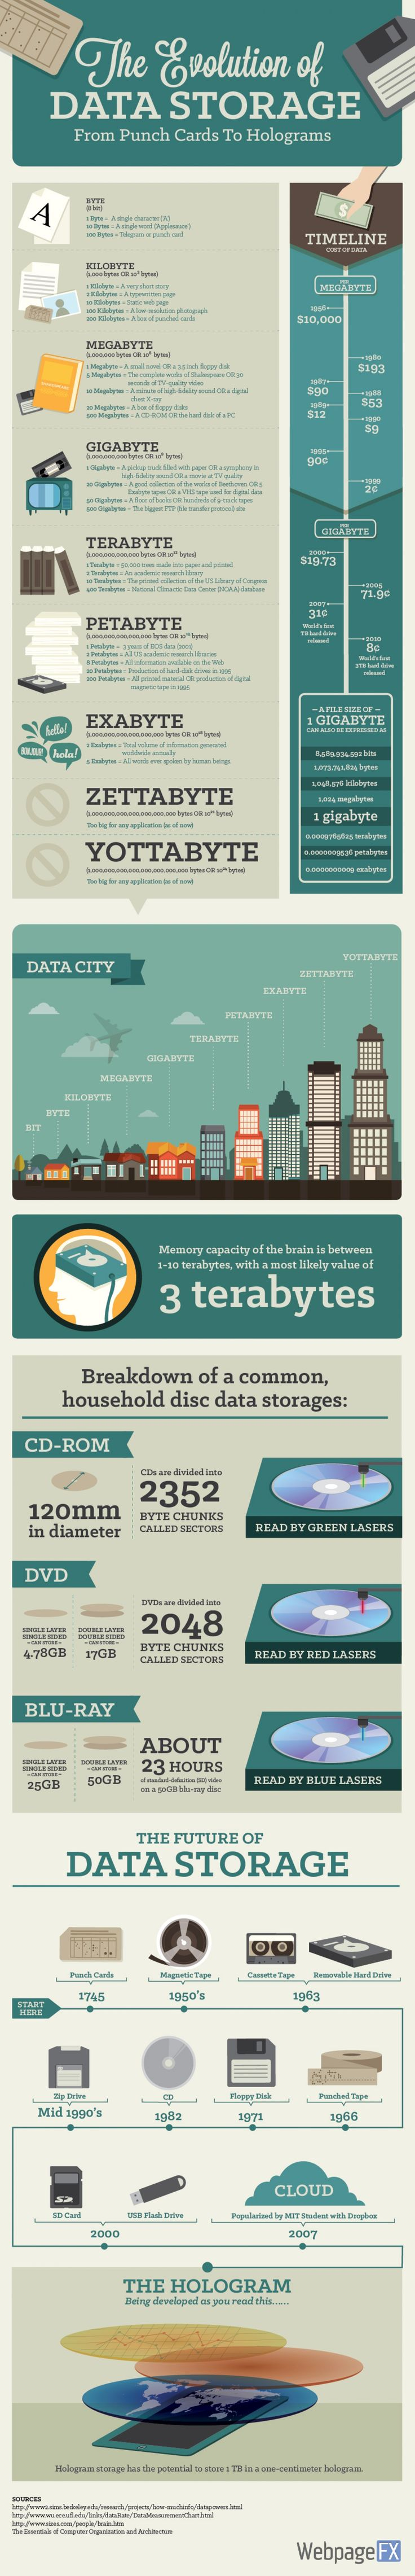 How will we store data in the zettabyte era?